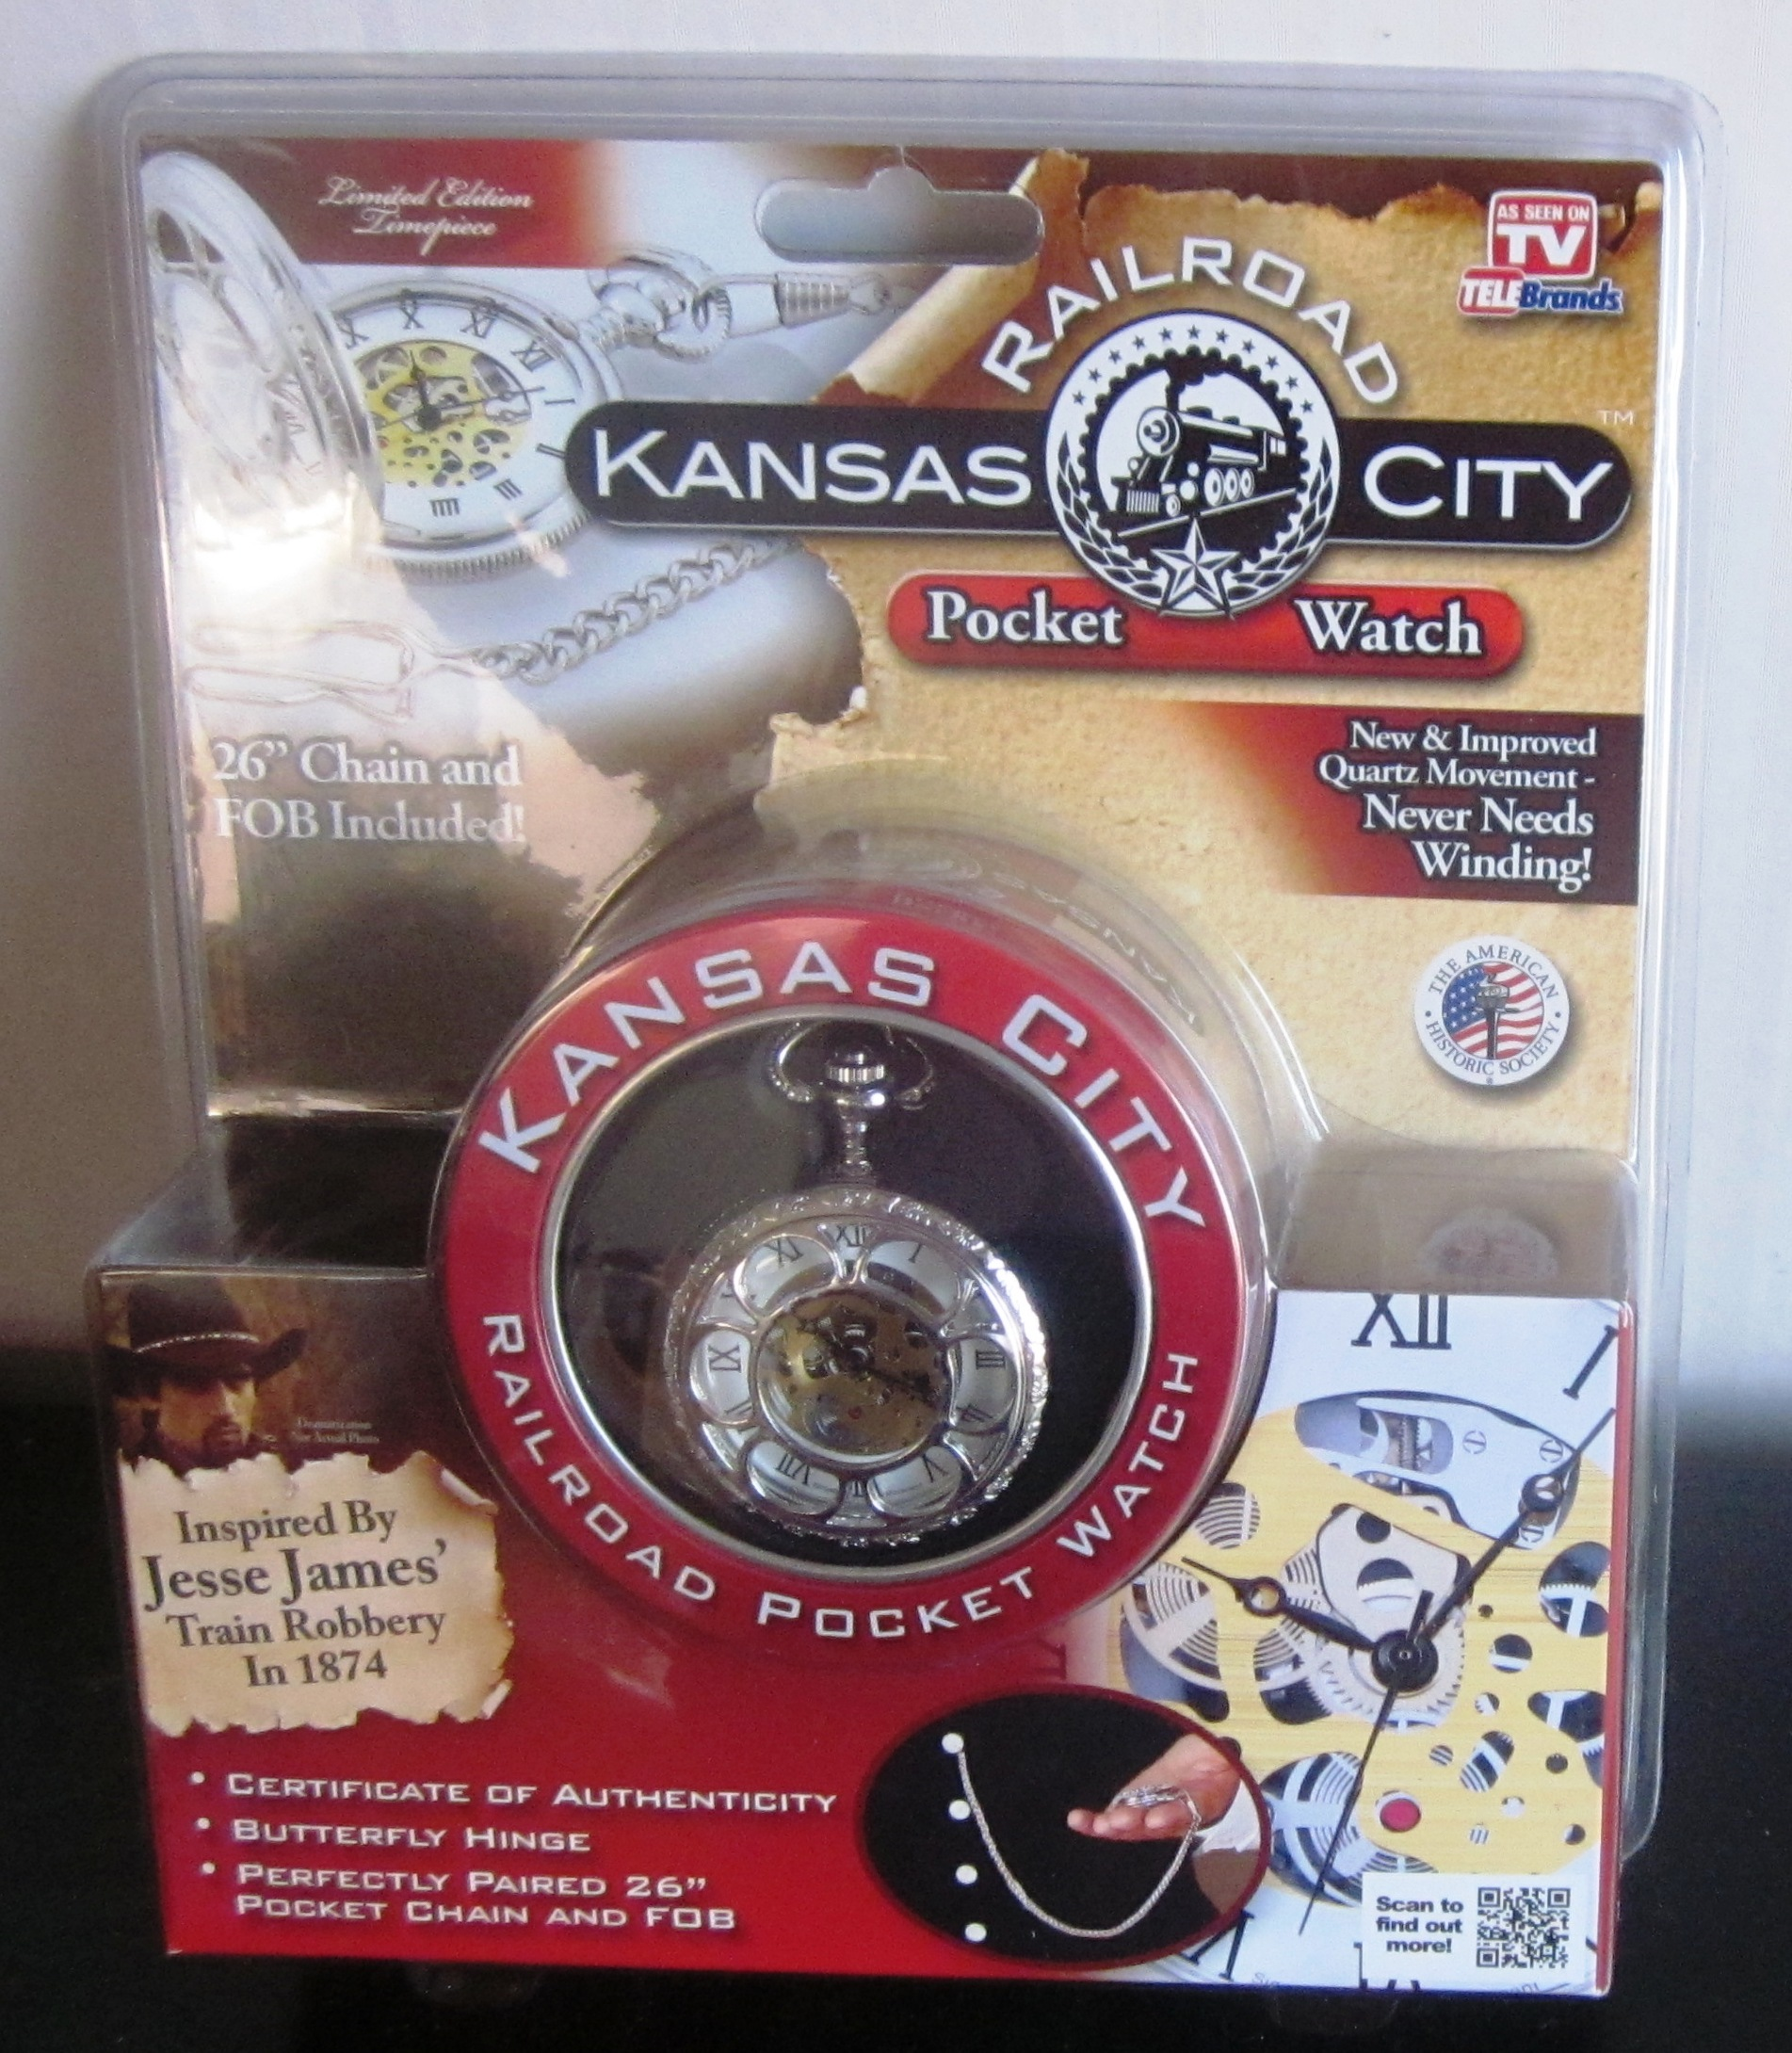 Kansas City Railroad Poceket Watch Limited Edition As Seen On TV